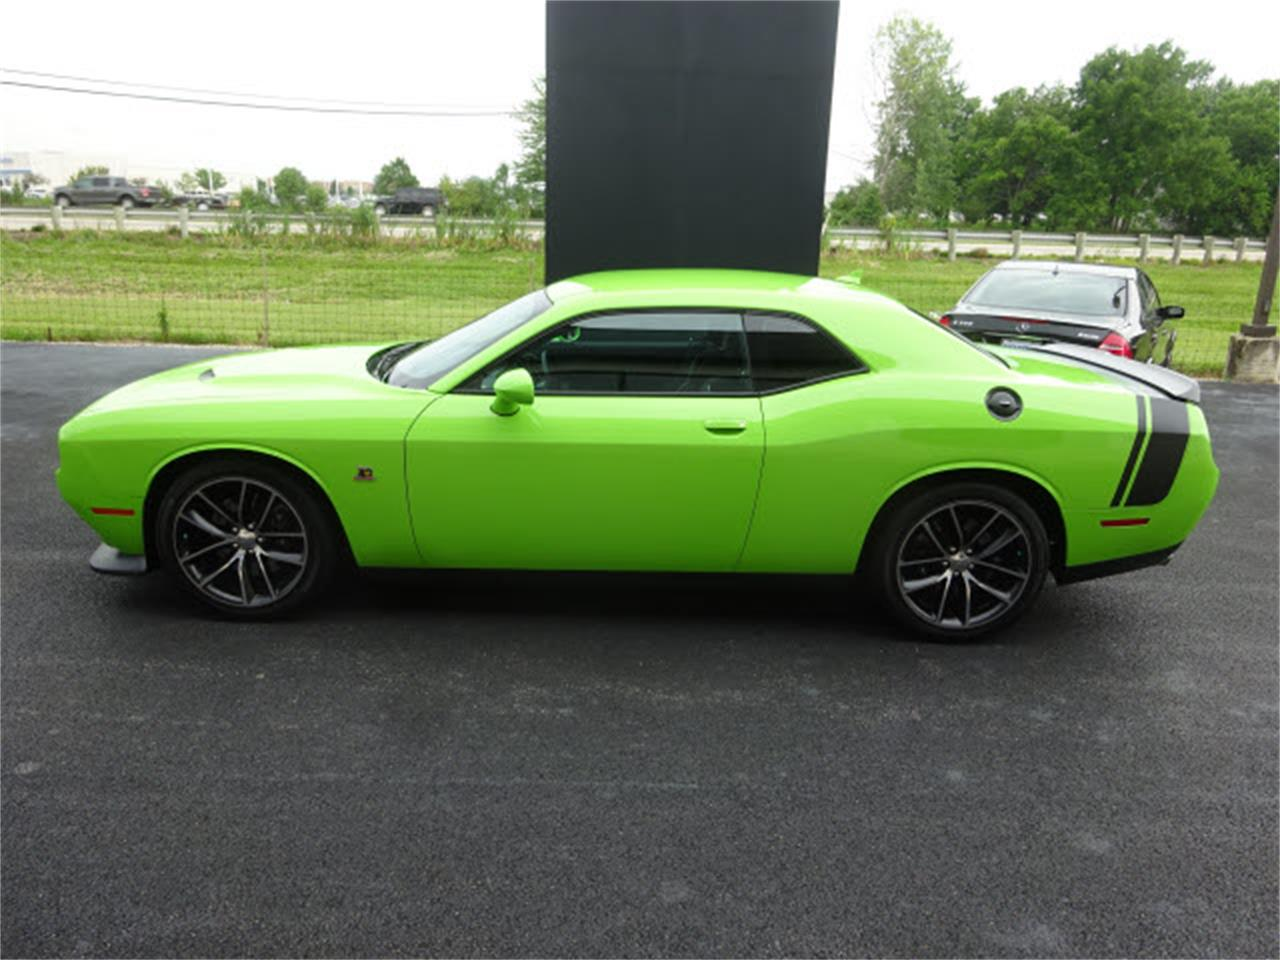 Large Picture of 2015 Dodge Challenger located in Ohio - $33,999.00 Offered by Nelson Automotive, Ltd. - LHOO